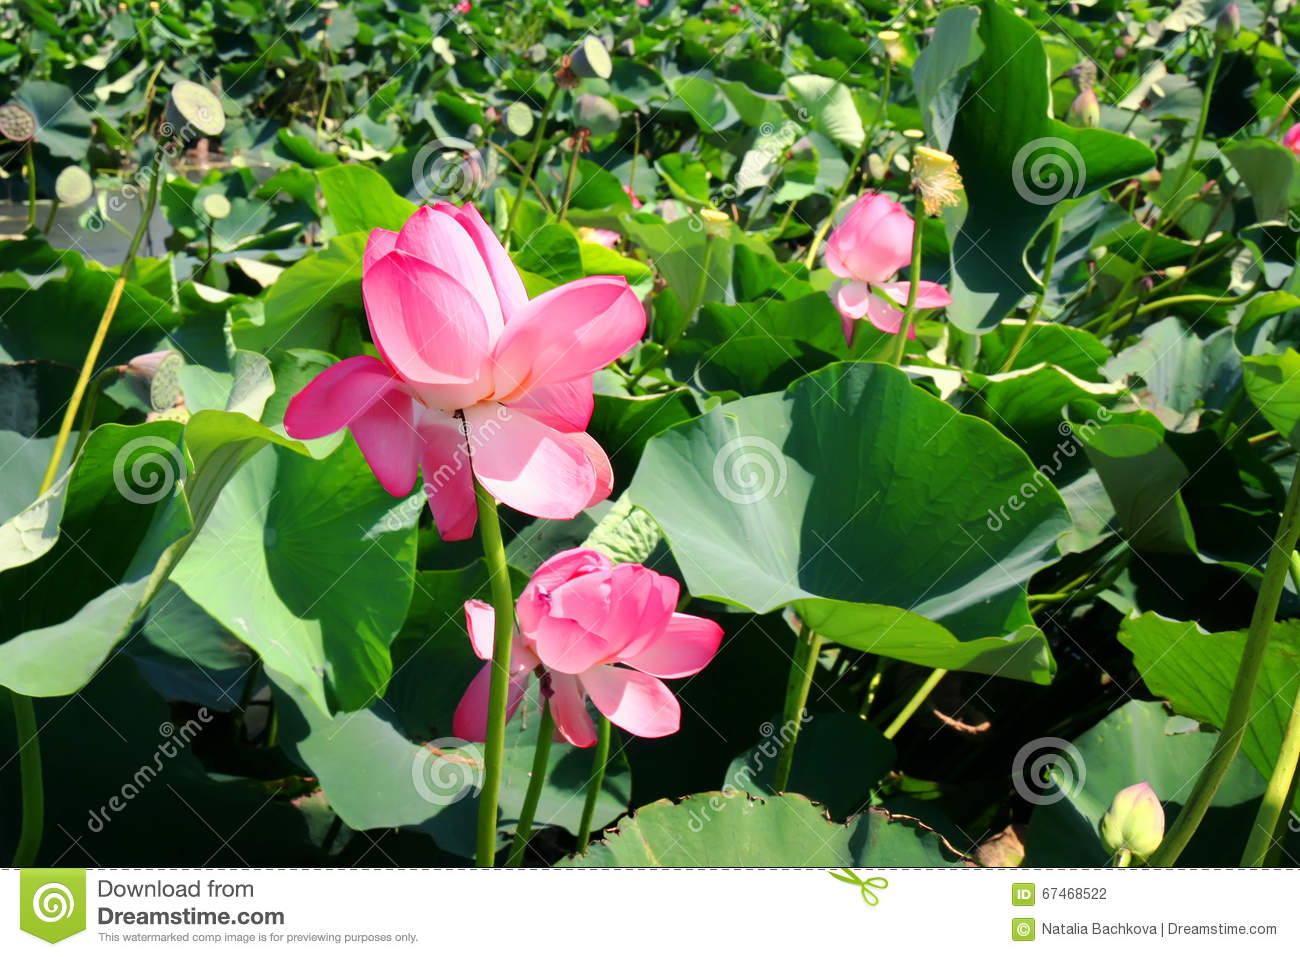 Lotus Flower Growing In Water Stock Photo Image Of Spring Blossom